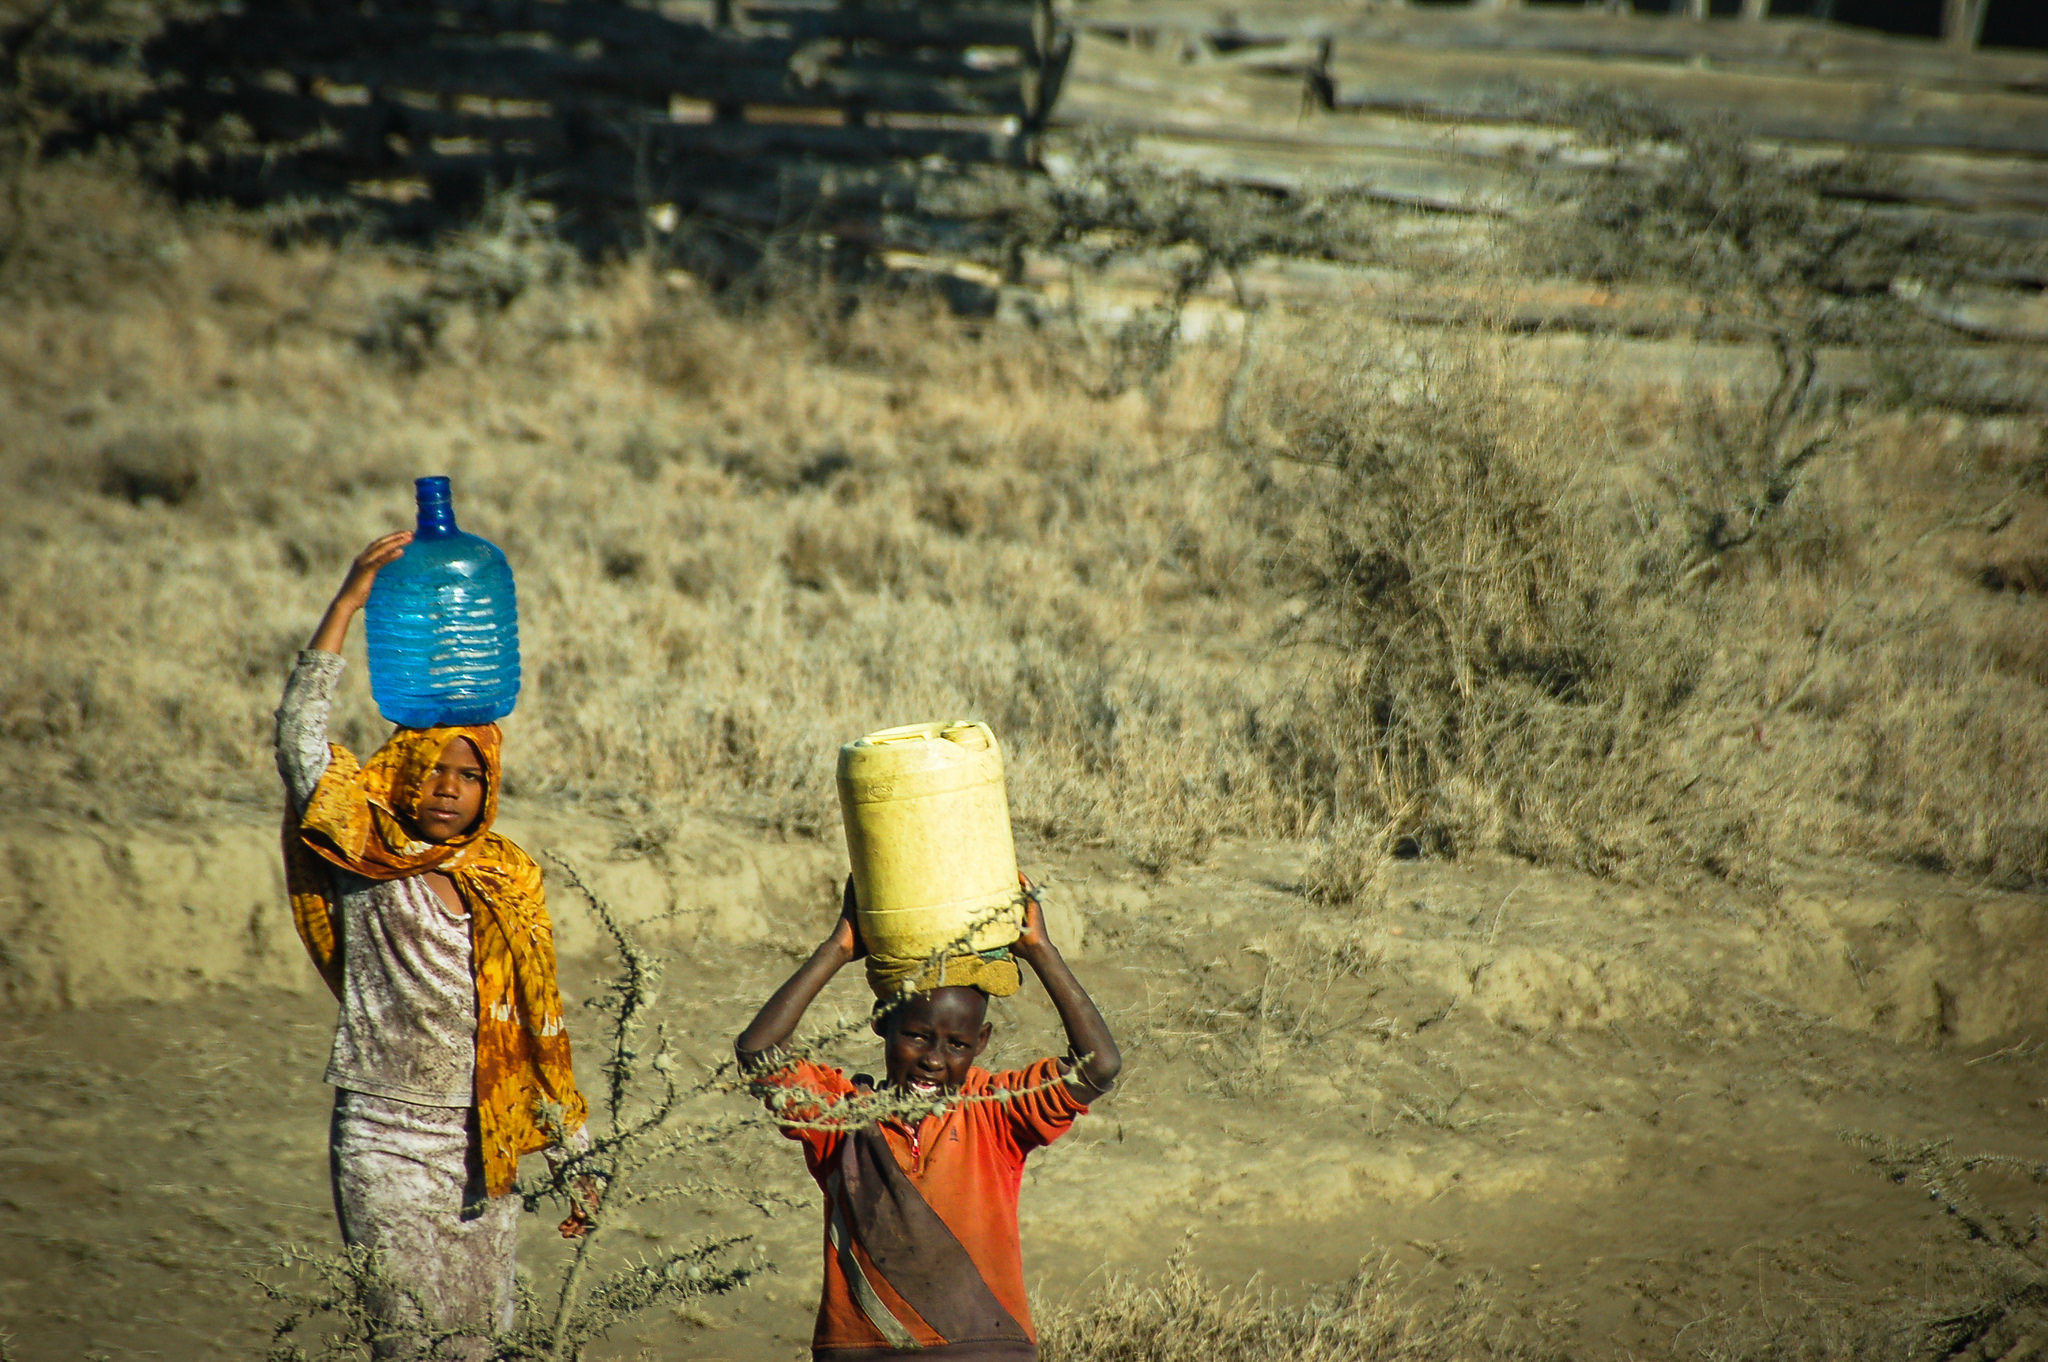 Tanzania's path to poverty reduction, pro-poor growth